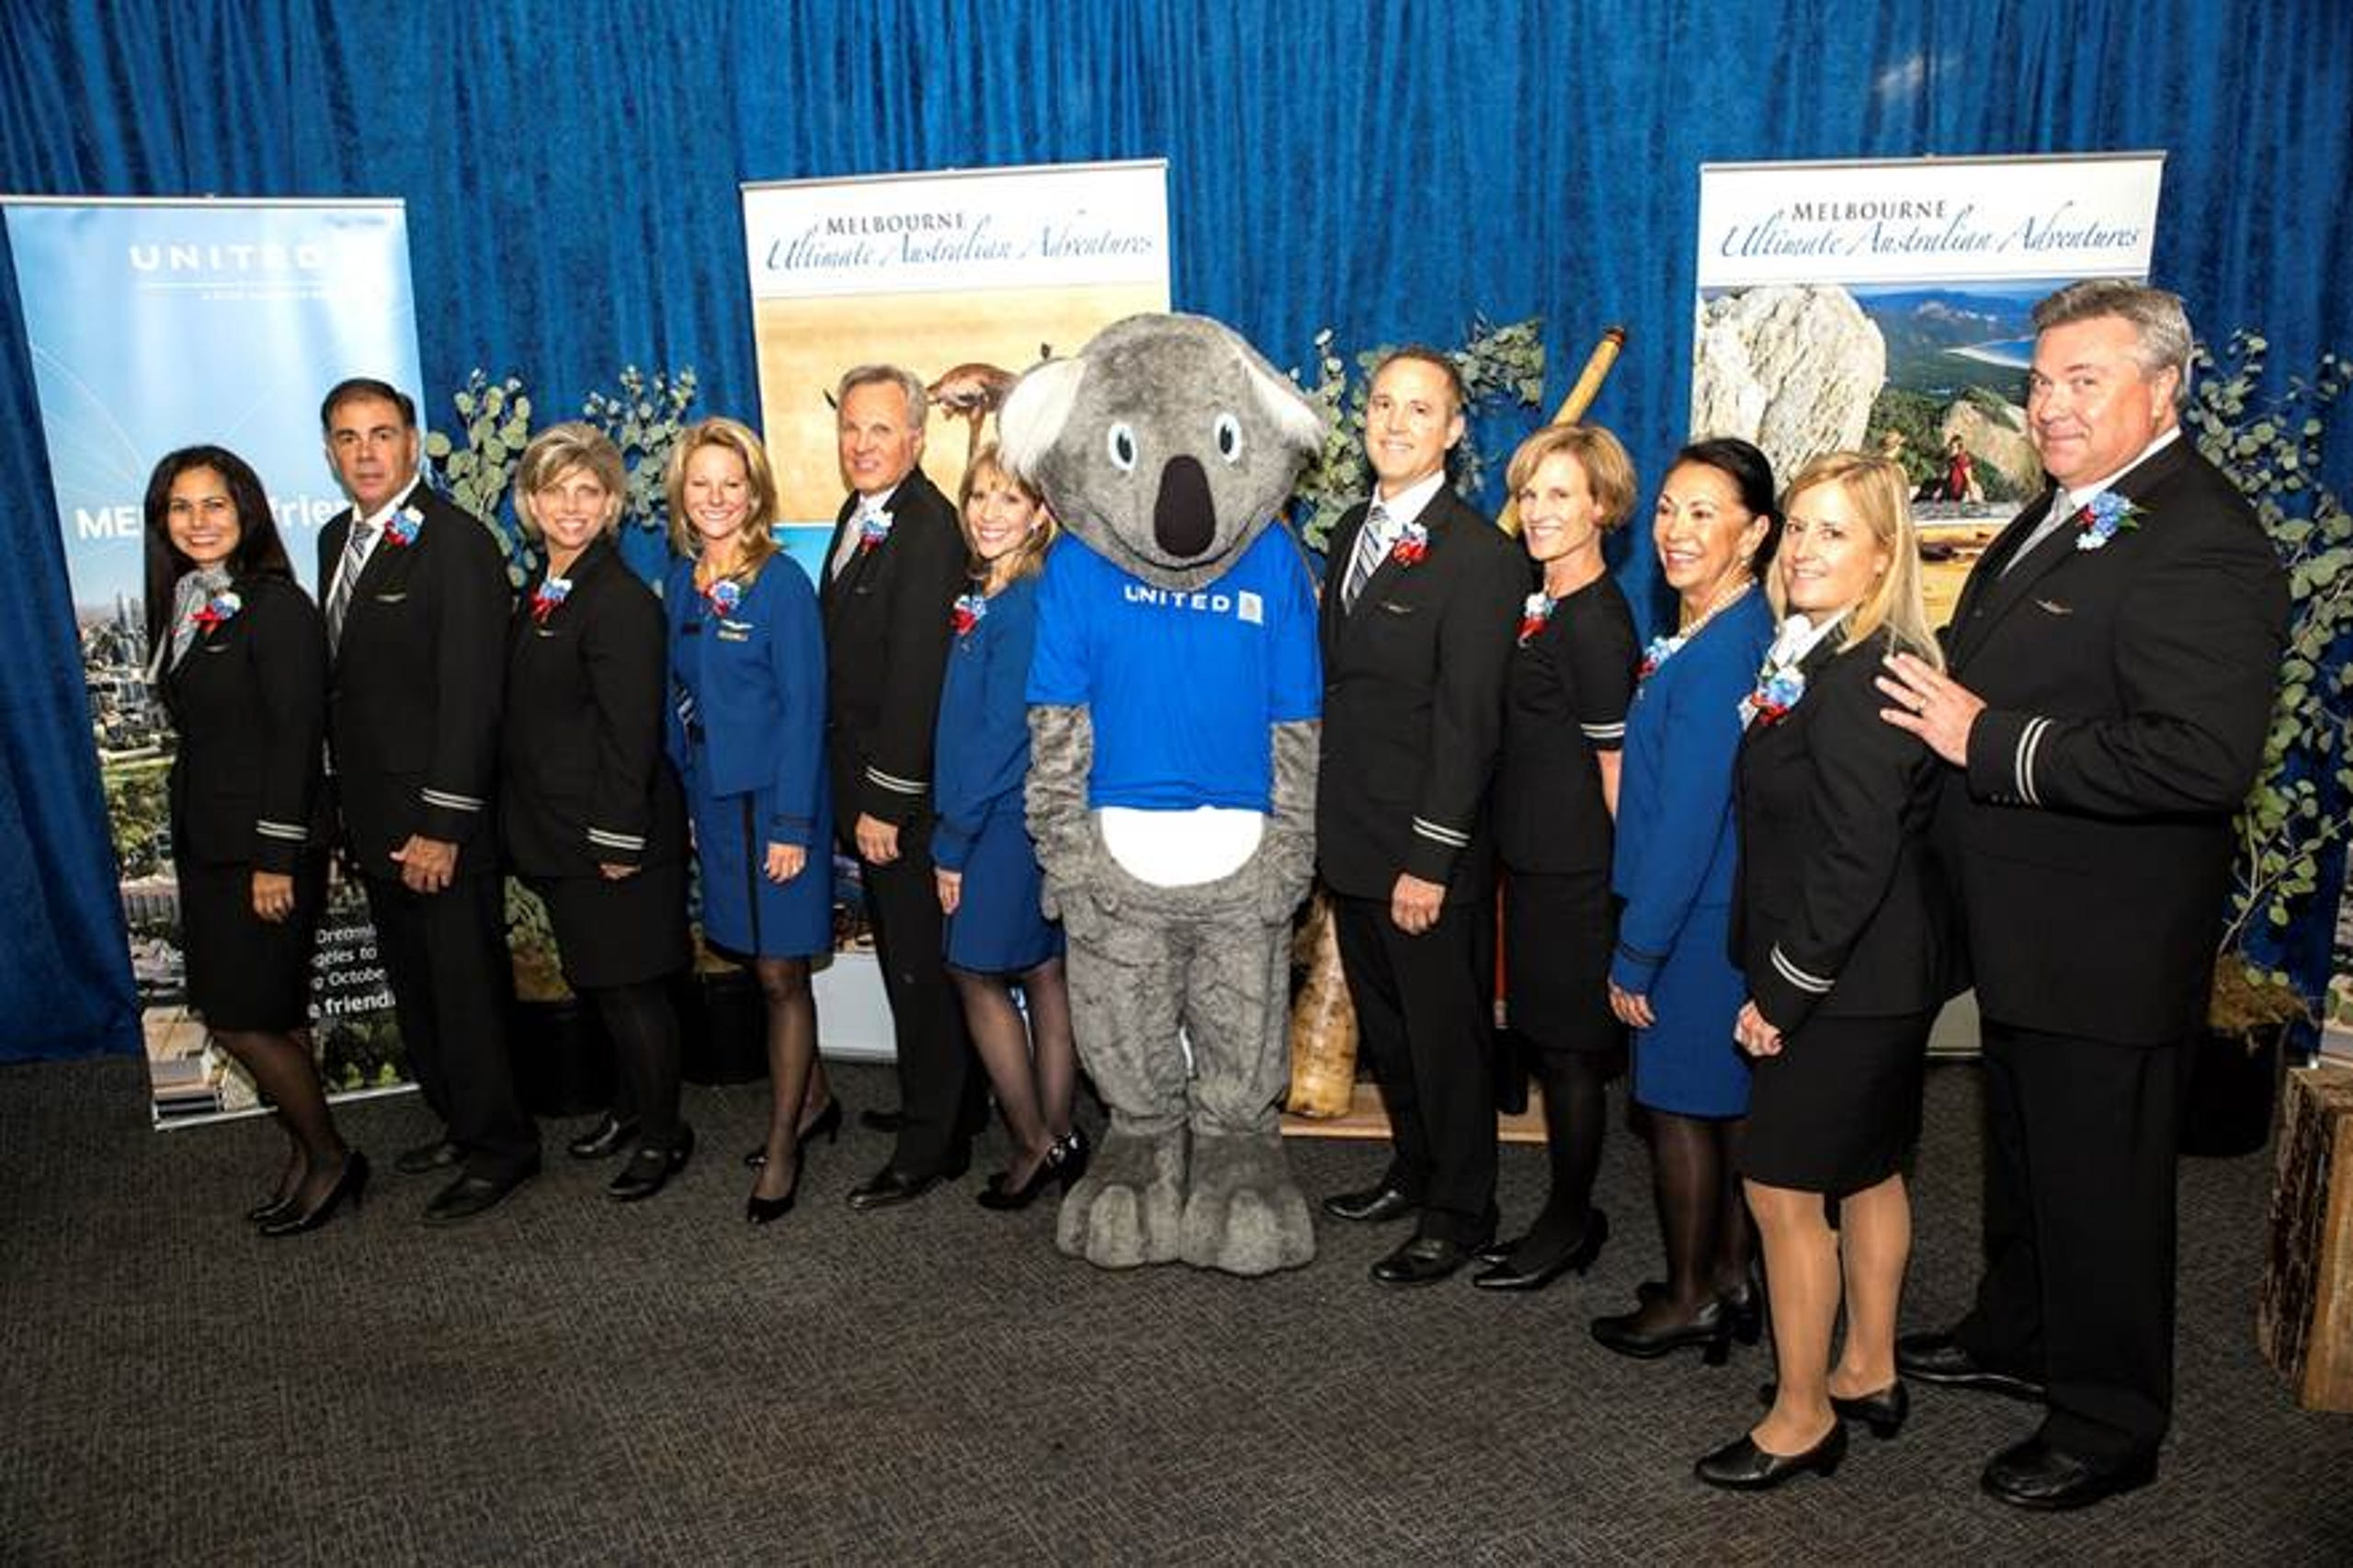 United launches first international route on 'stretch' Dreamliner